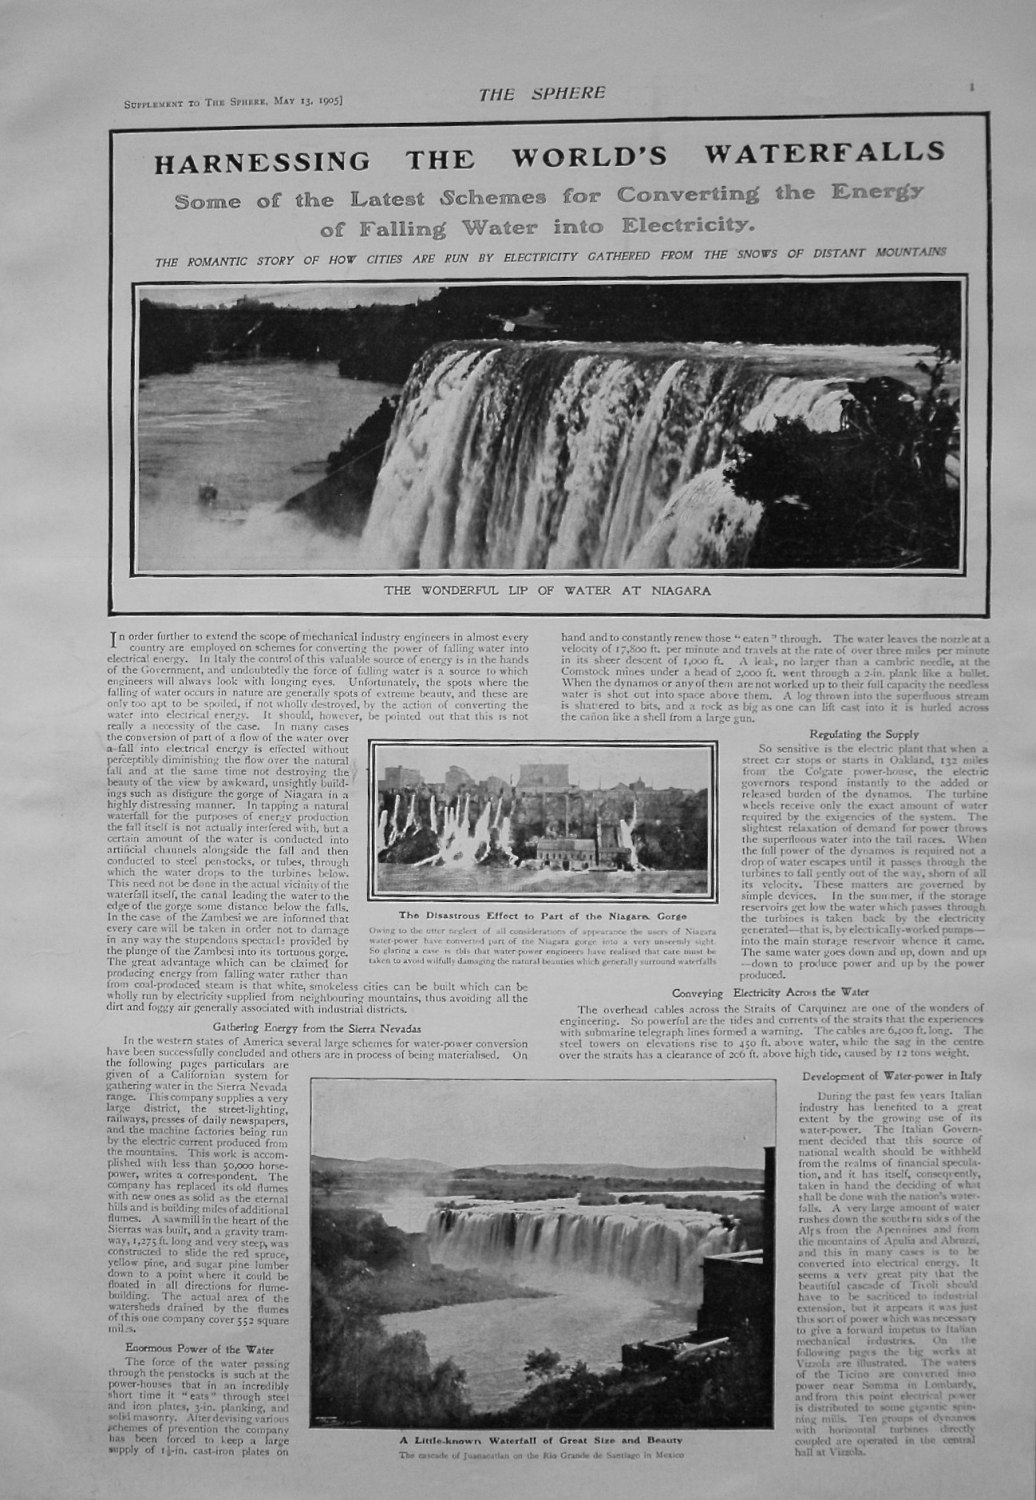 Harnessing The World's Waterfalls. 1905.